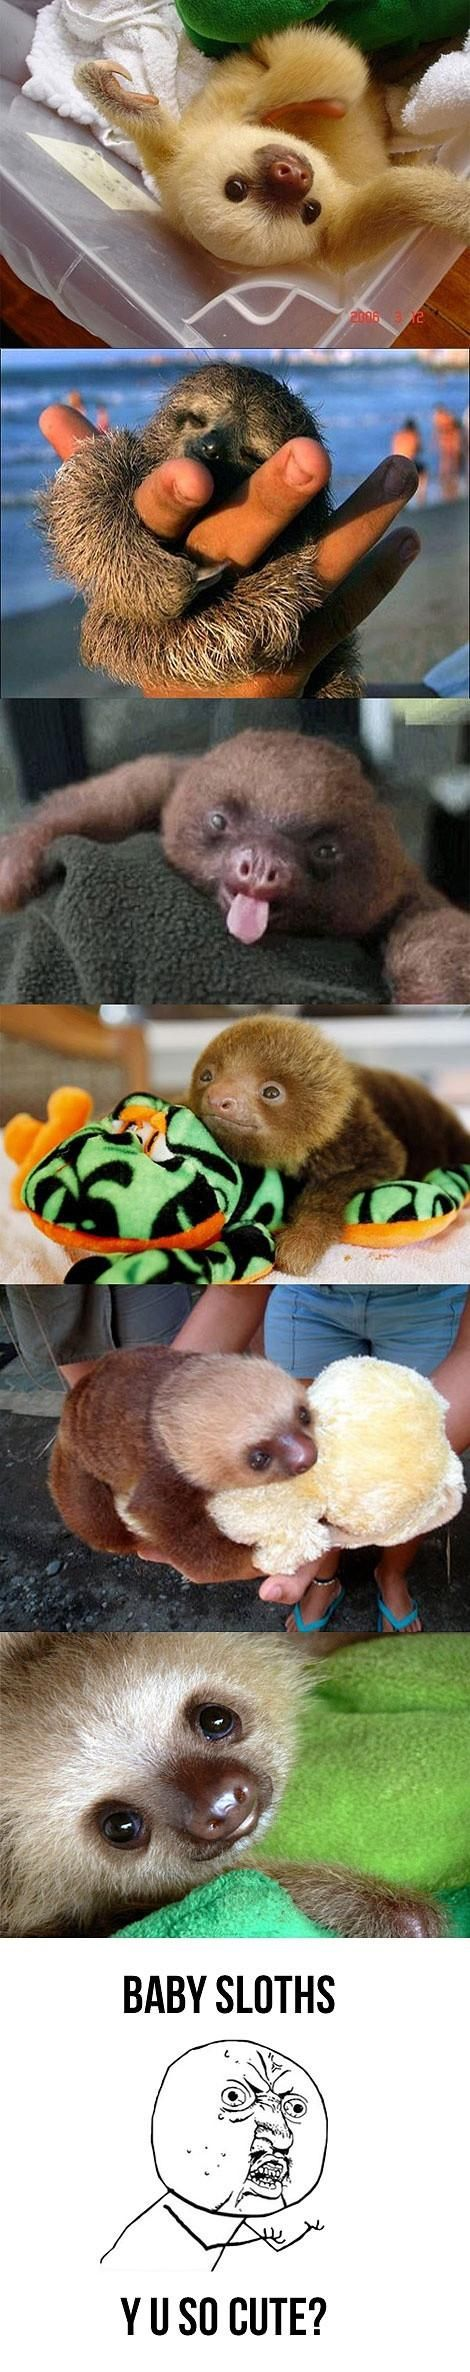 Baby sloths are really too effing adorable. The third one down, with the tongue? Too much. Love em